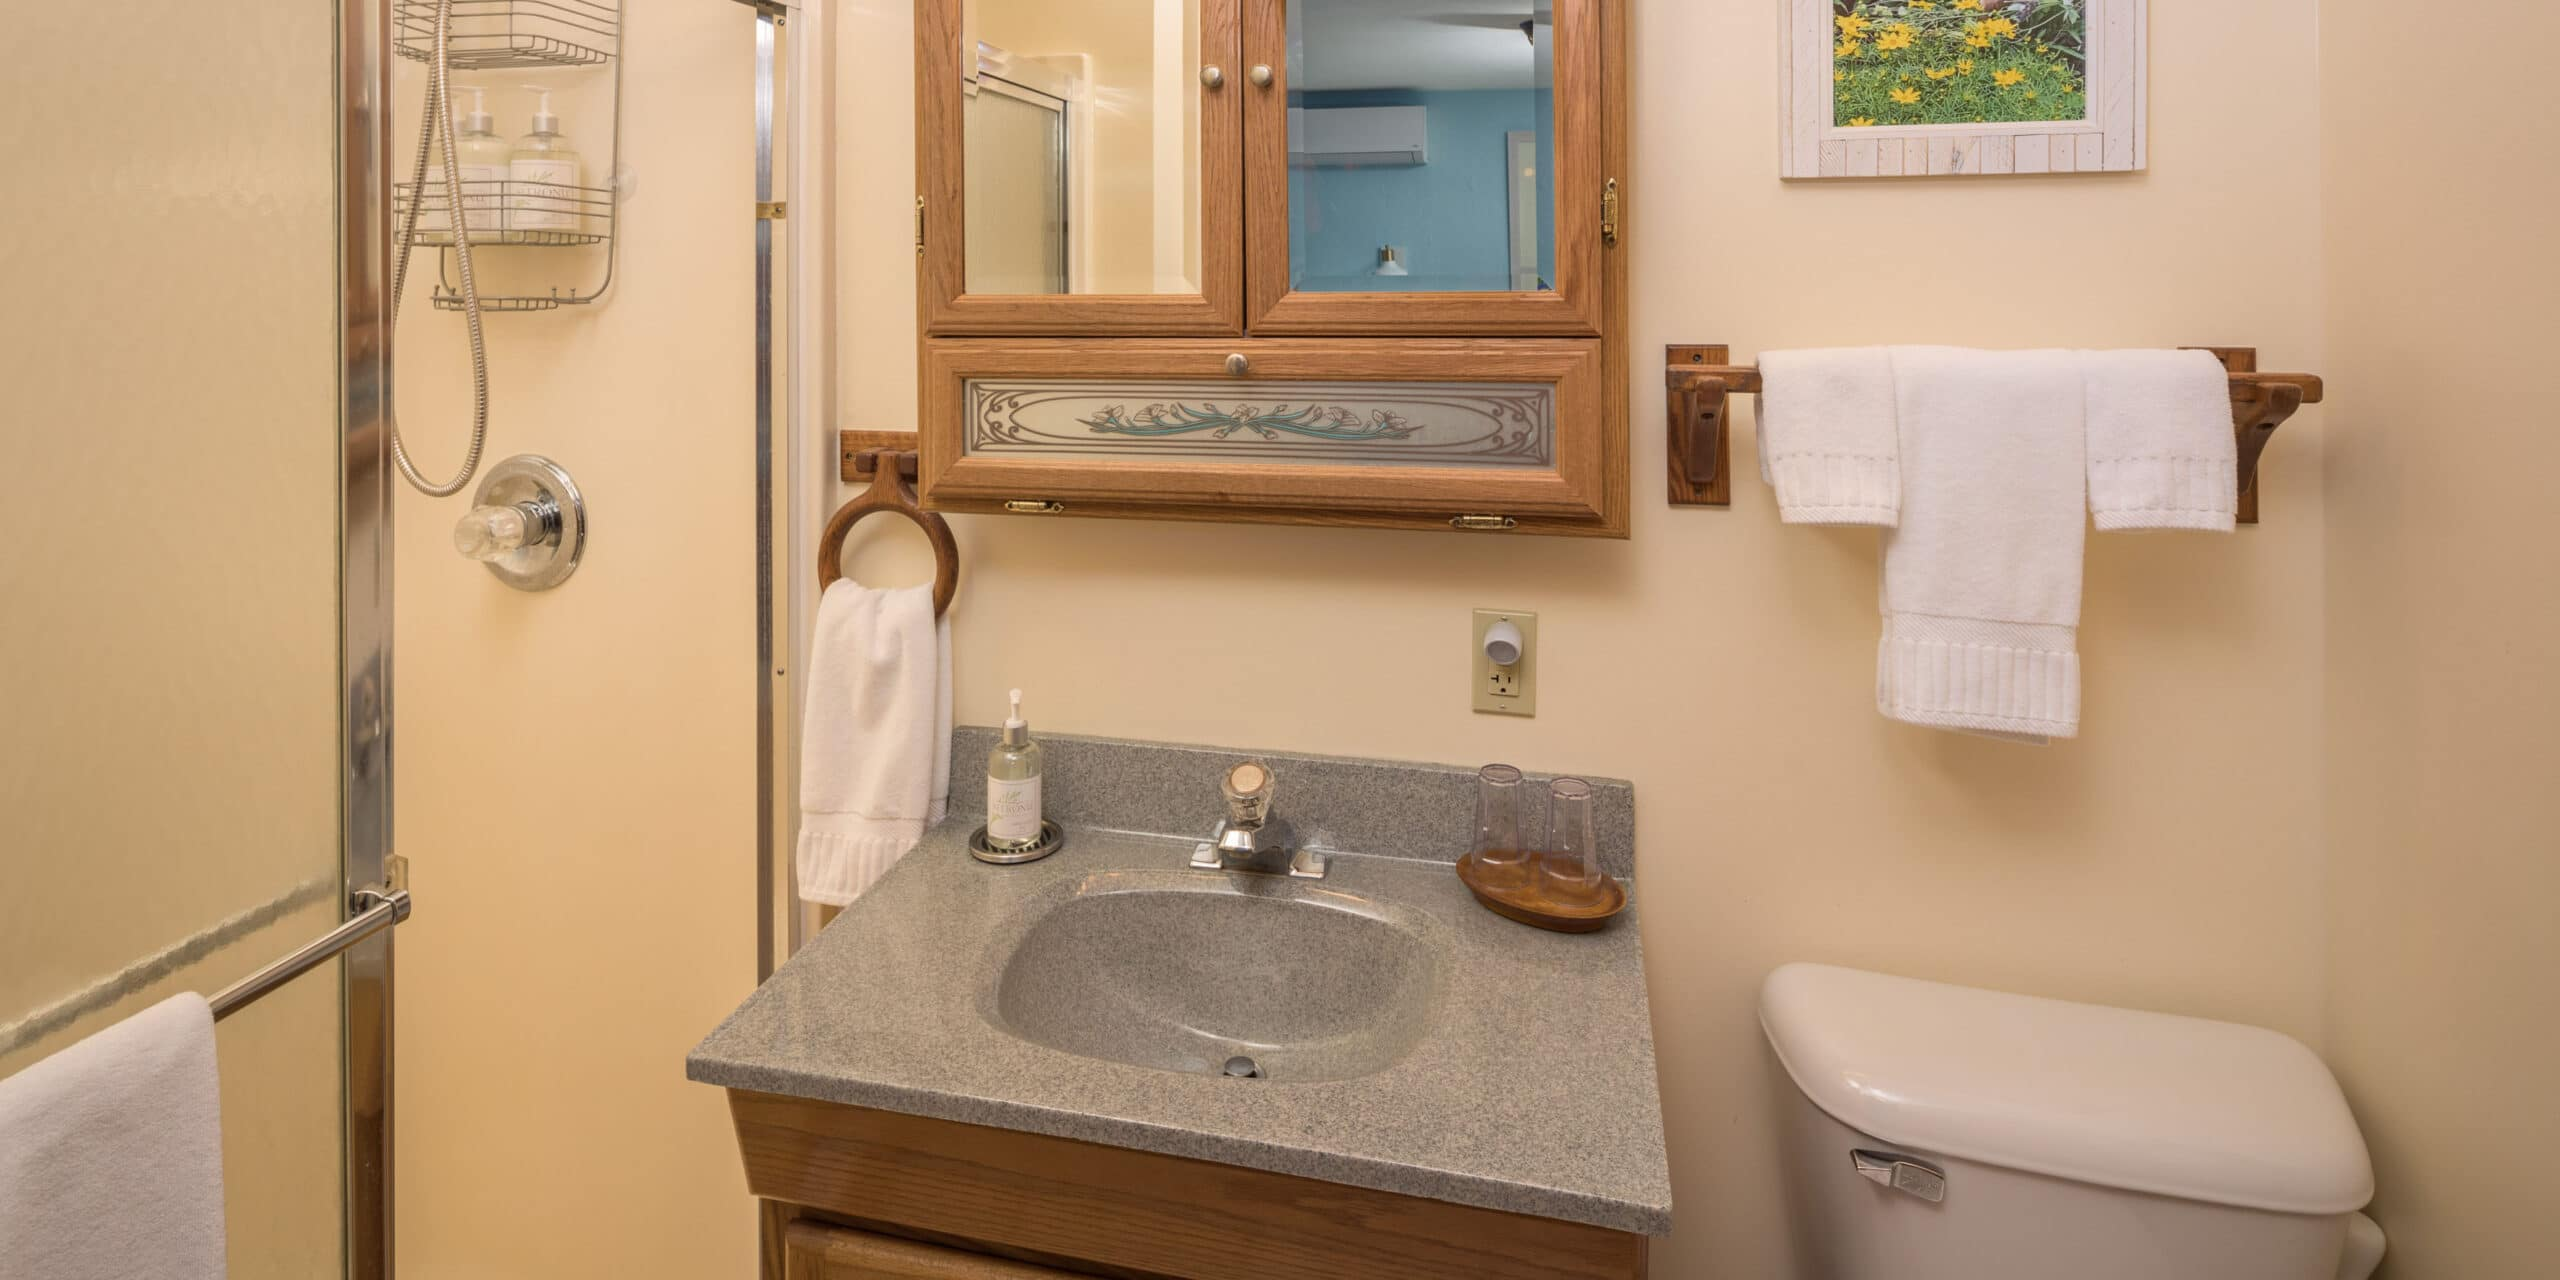 walk-in shower, sink, and toilet